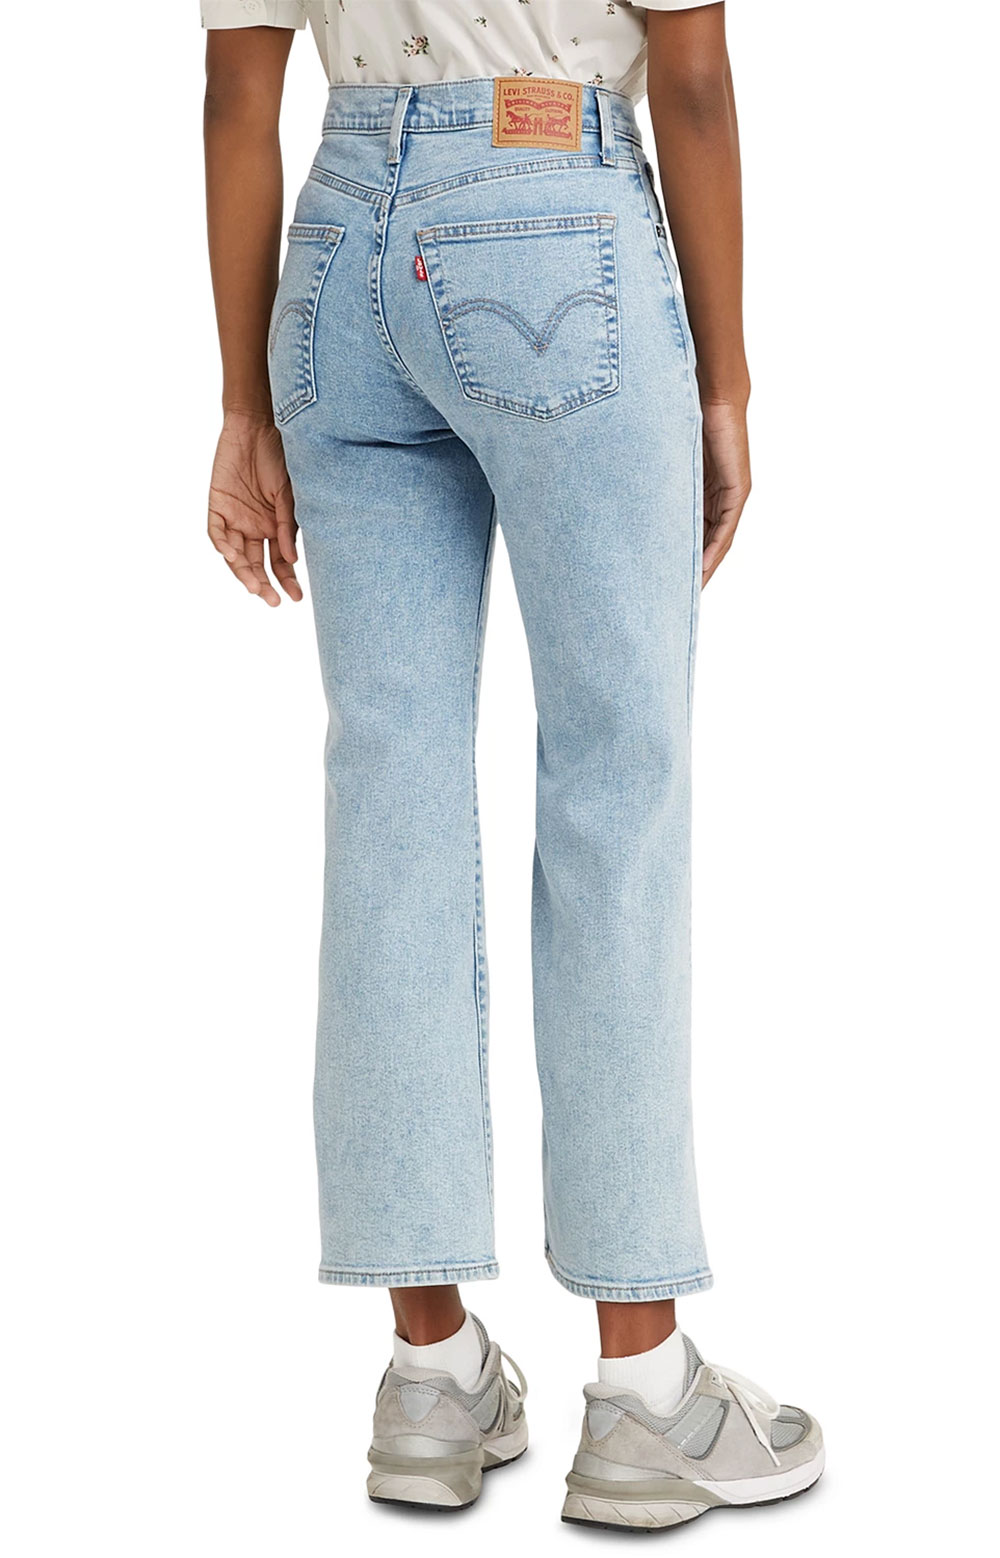 (A0967-0001) High Rise Cropped Flare Jeans - High Light/Light Wash  3